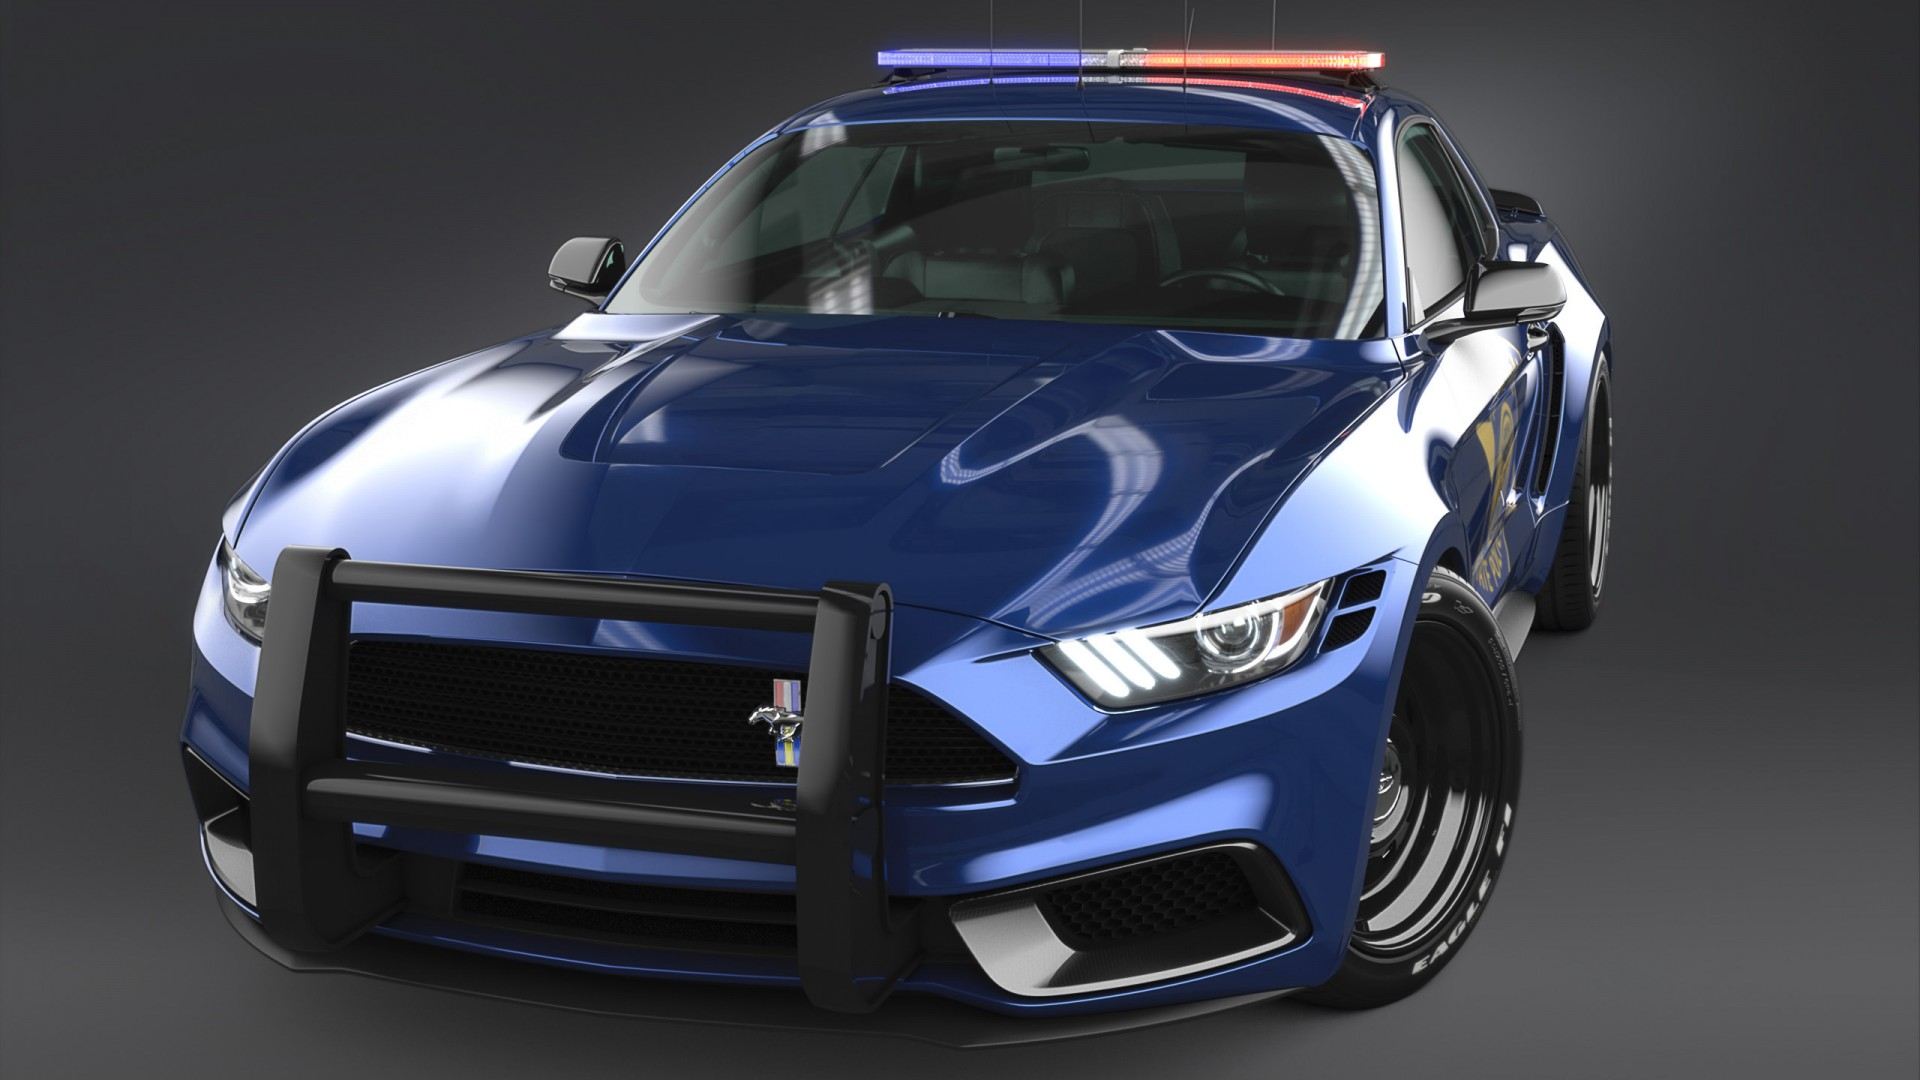 2017 Ford Mustang NotchBack Design Police 3 Wallpaper | HD ...